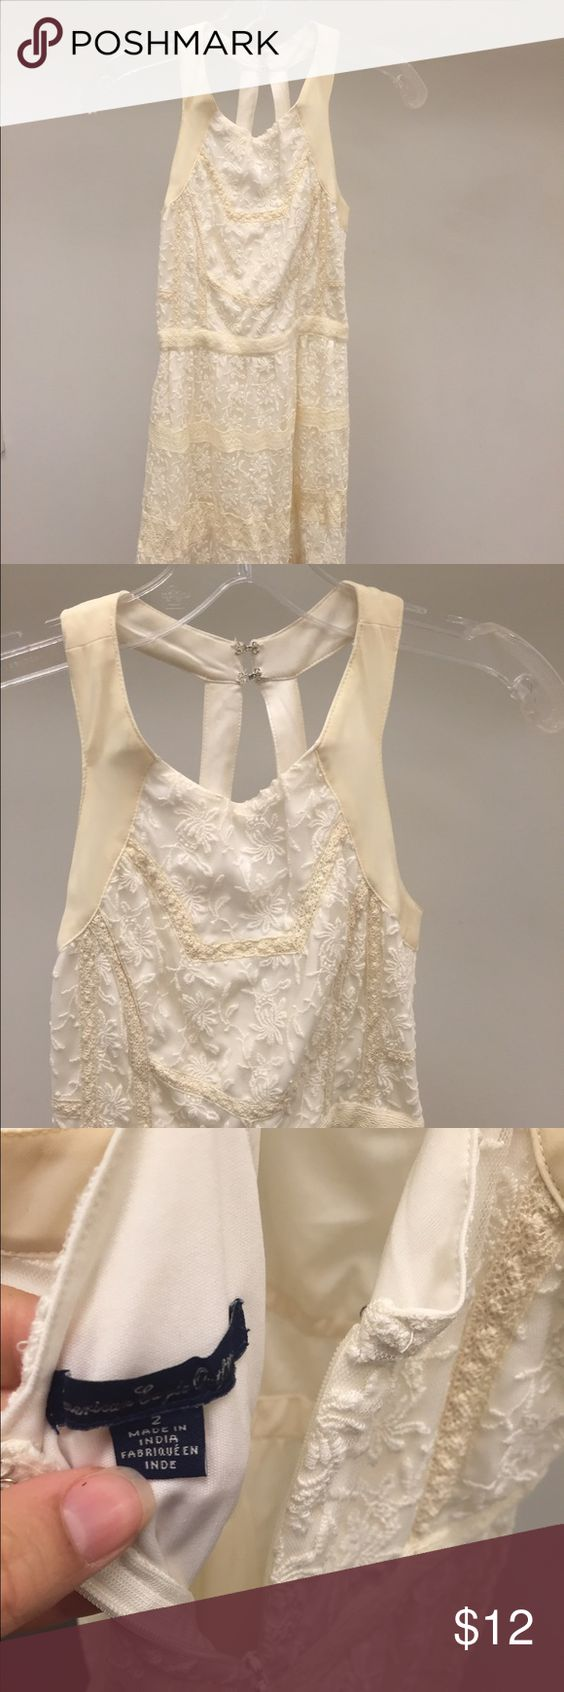 American Eagle Lace Dress Gorgeous cream and tan lace dress from American Eagle. Pretty neckline and back. It has been worn but has no major flaws or damage. #ae #americaneagle #neutral #lace #dress #pretty #femimine American Eagle Outfitters Dresses Mini